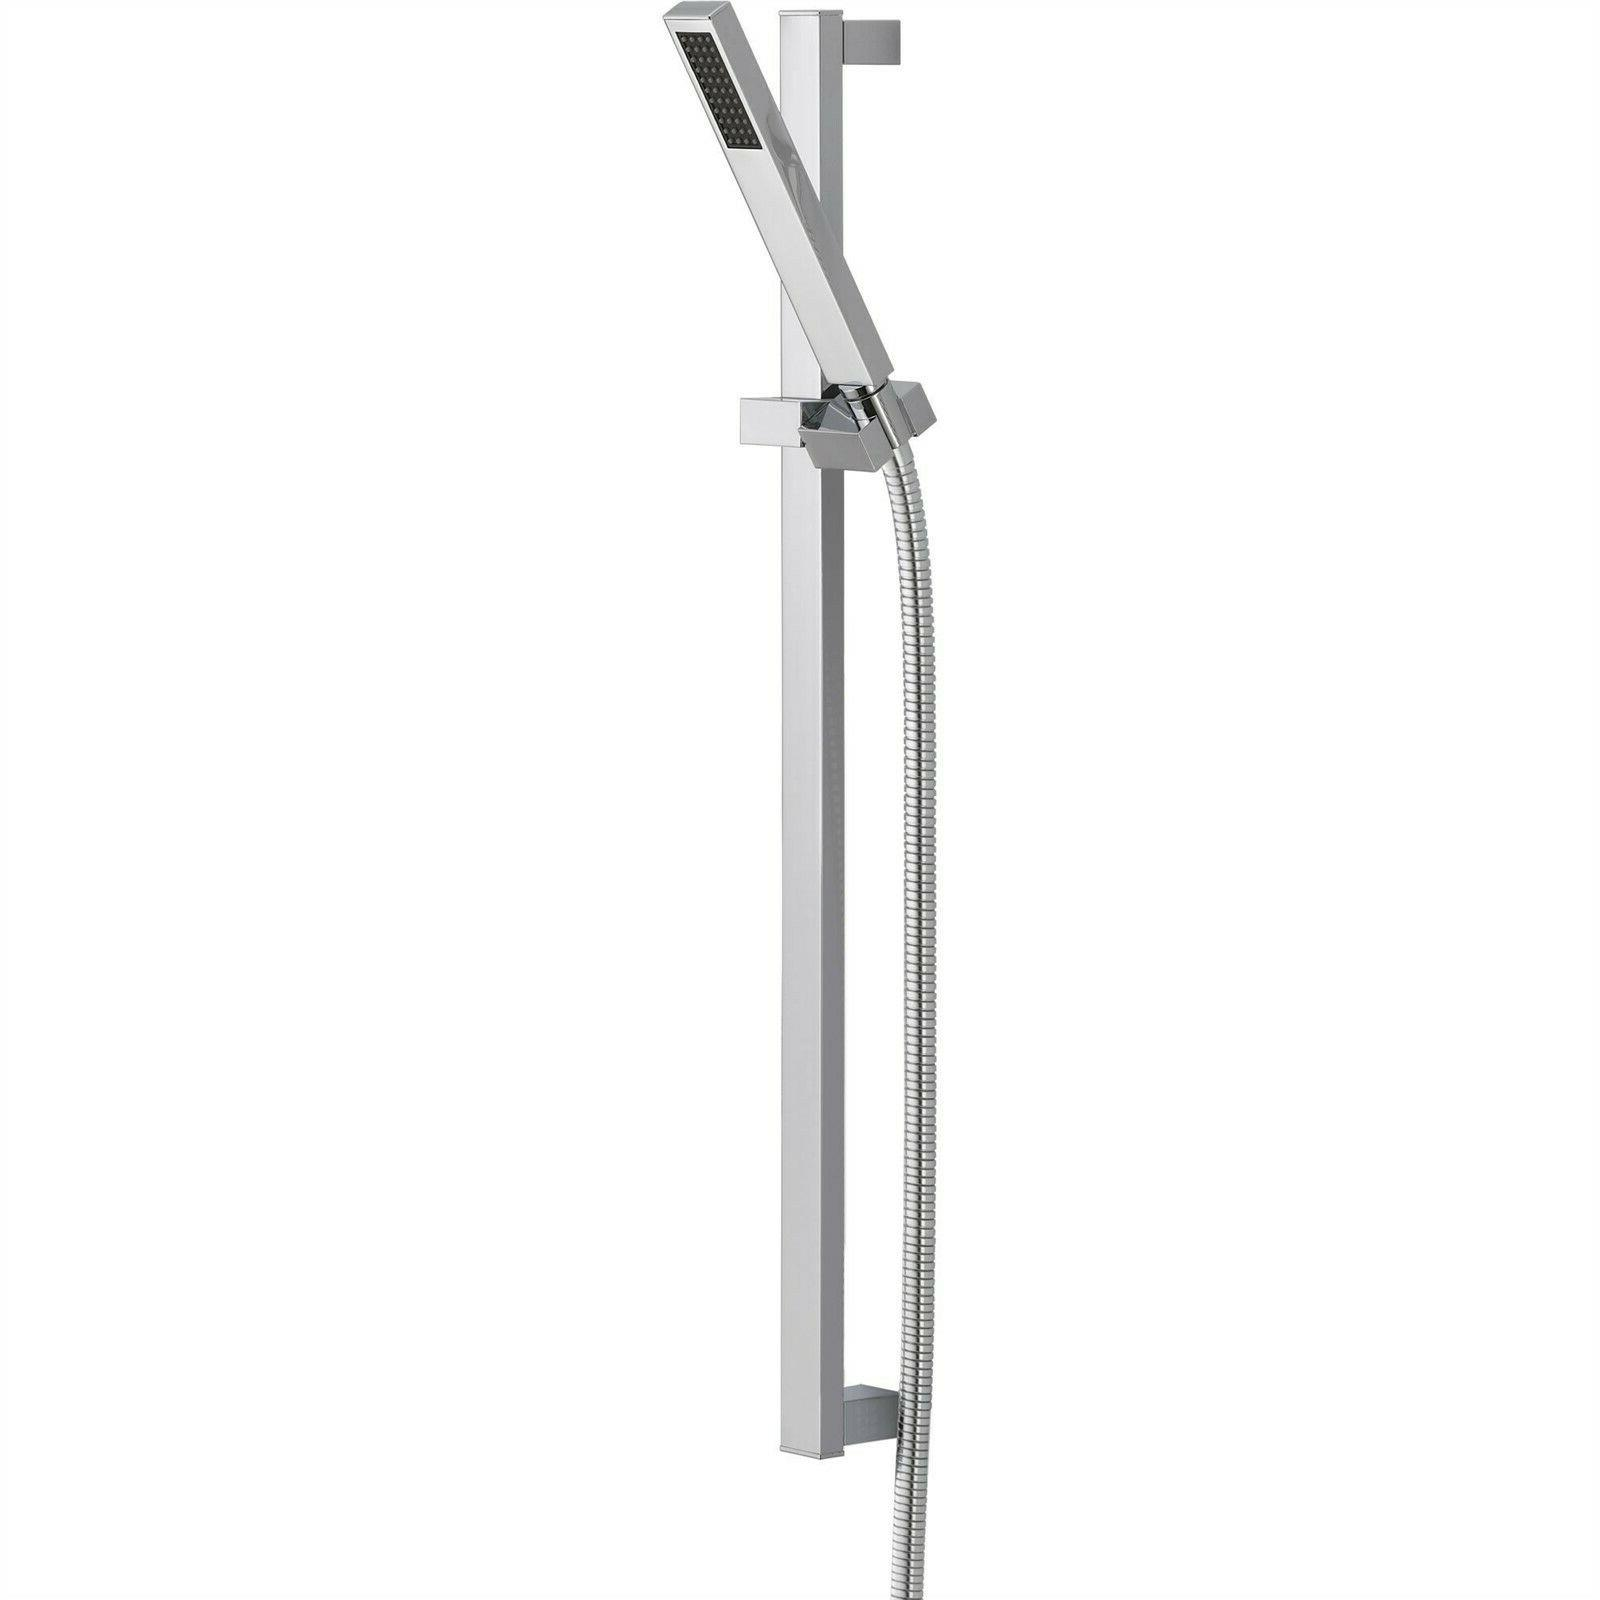 Delta 57530 Wall Mount Slide Bar w/Hand Shower with Single S